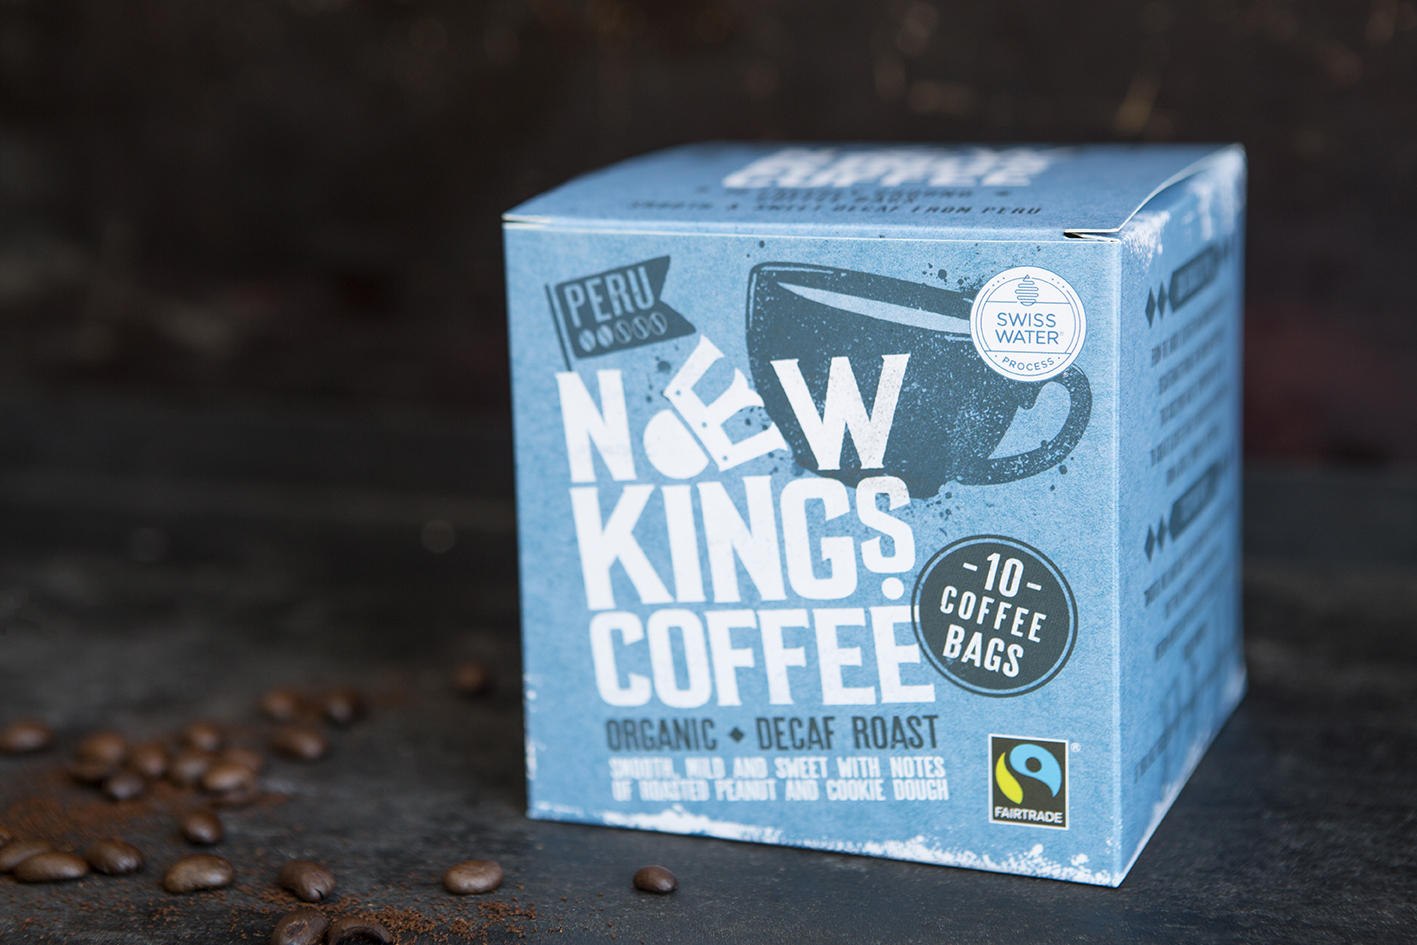 New-Kings-Coffee-Bags-Fairtrade-Organic-Decaf-Roast-10.jpg